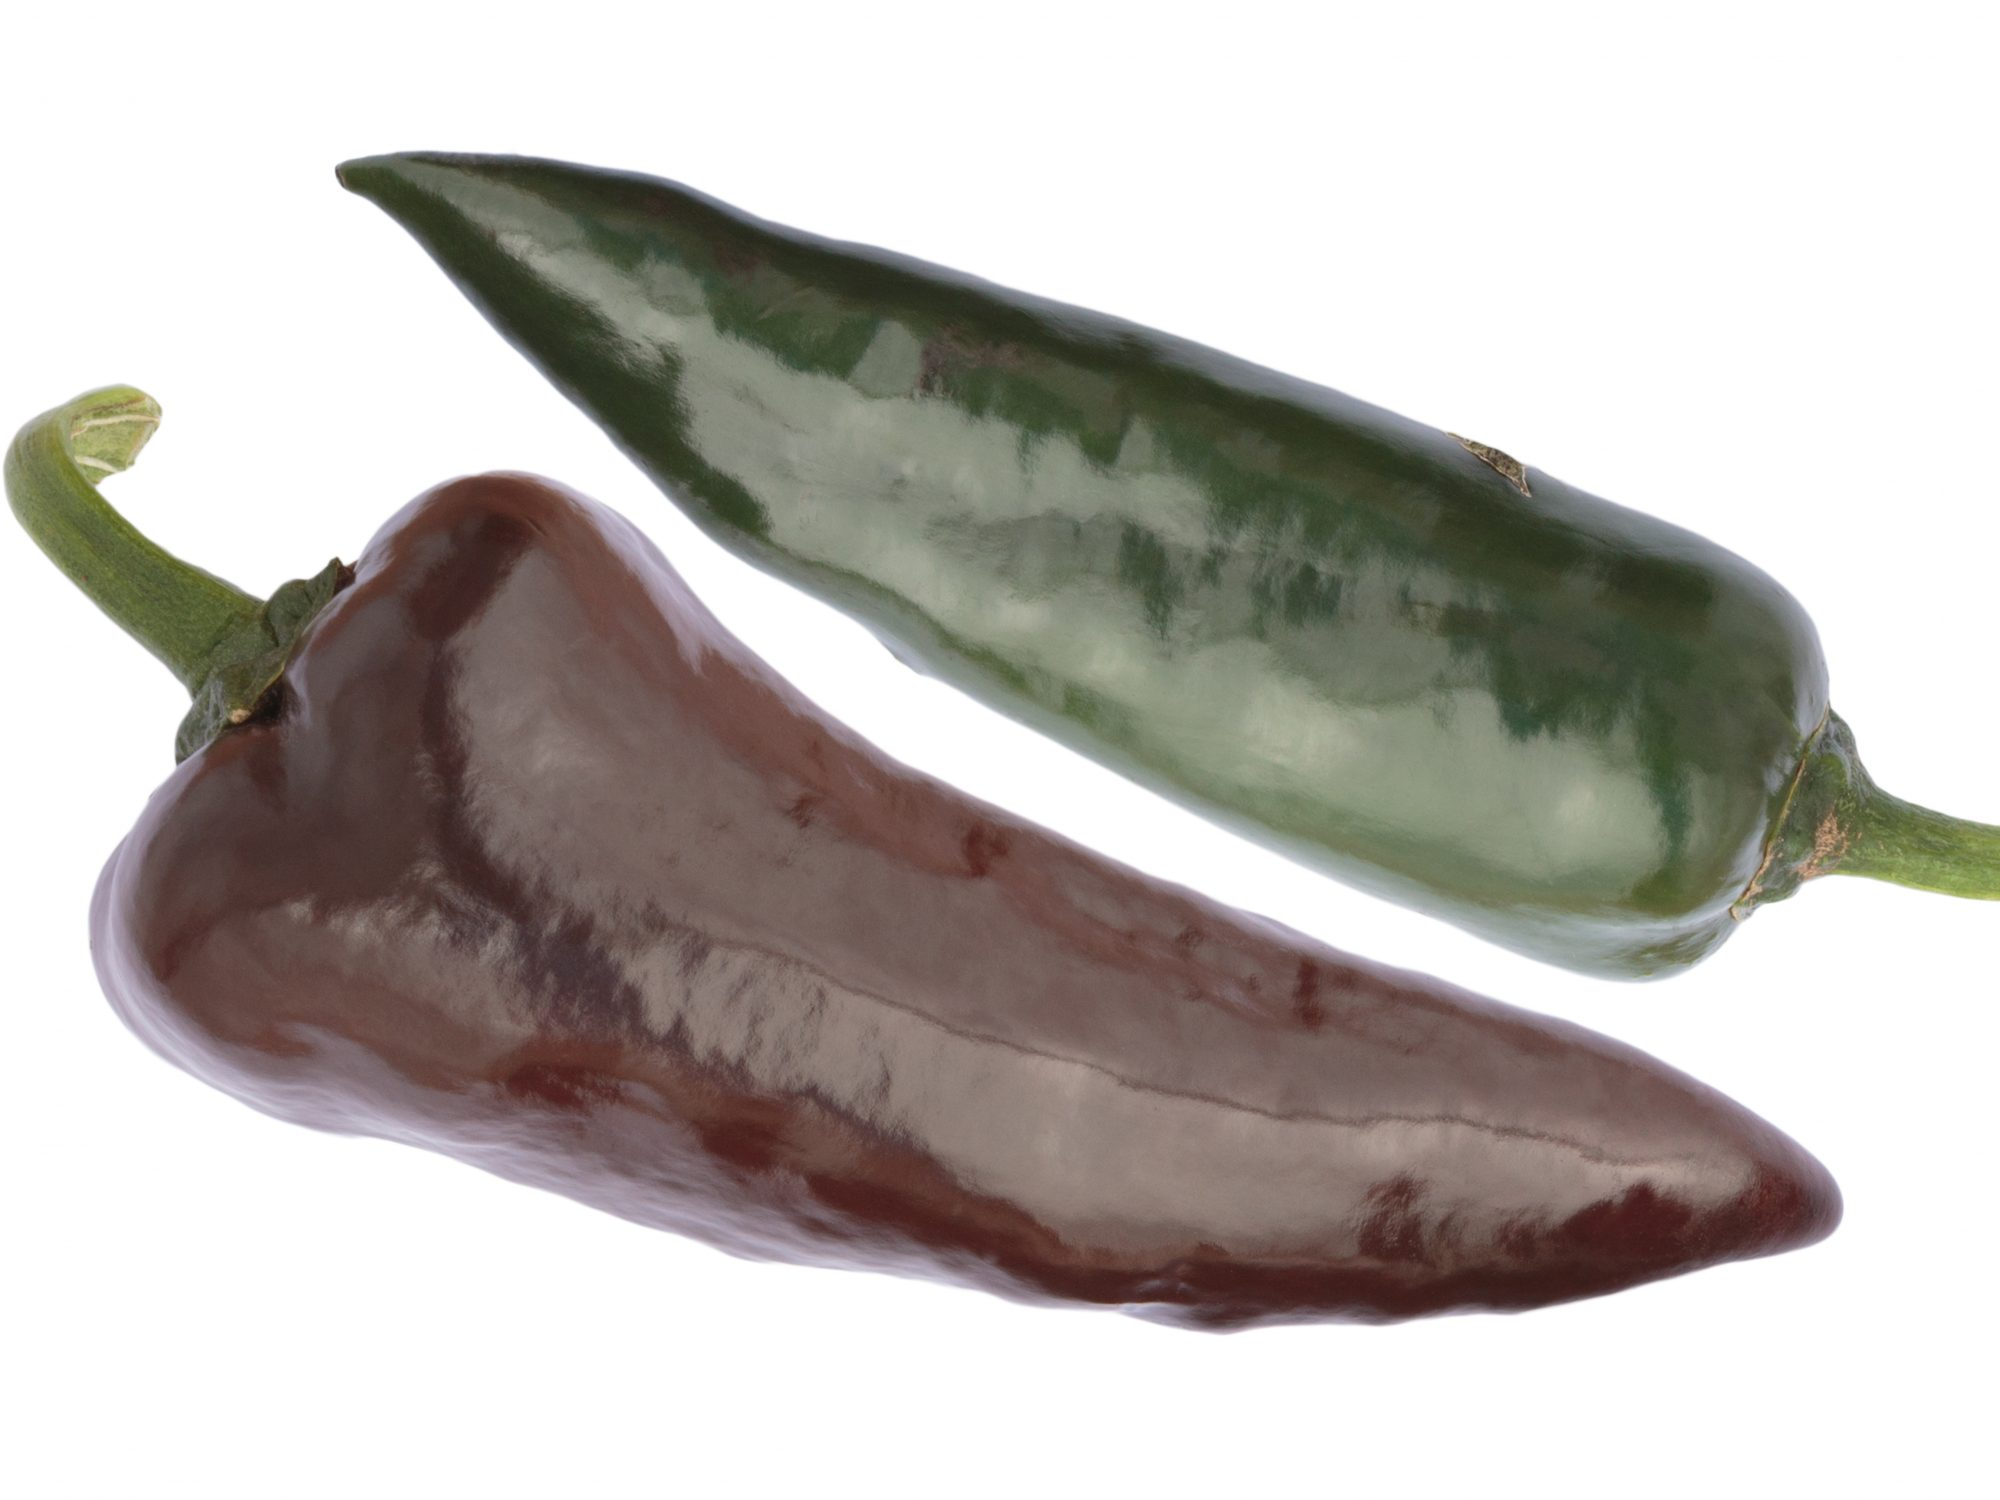 The Pasilla (Chilaca) - a brown variety of chili pepper. The rather large pods (> 15 cm) are medium hot with a heat lefel of 5-6 (from 0 to 10). A brown and a unripe green pod against white background.